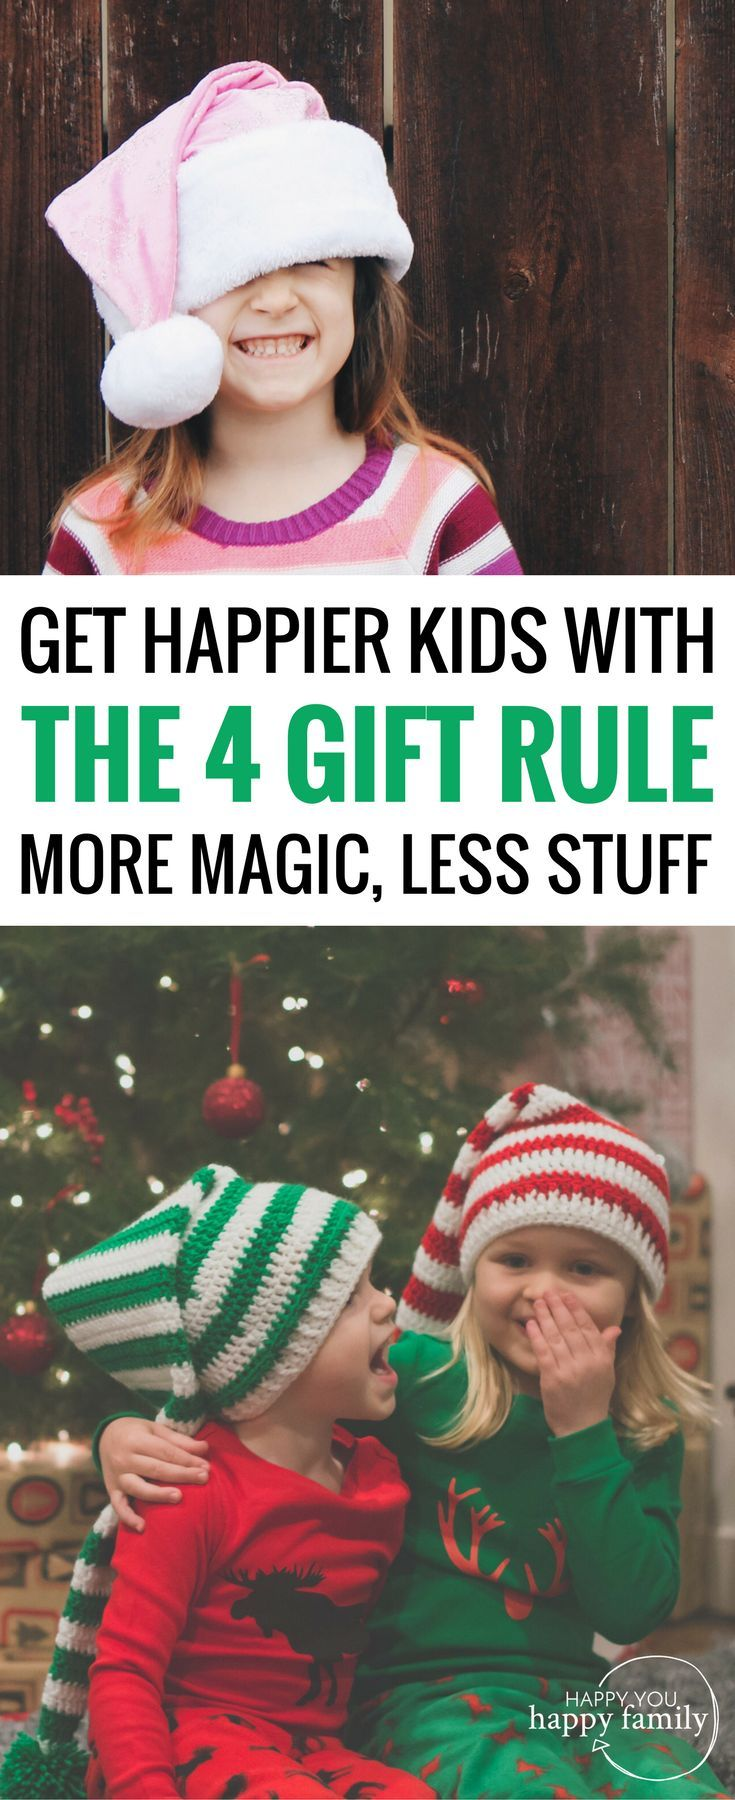 Let S Stop Bombarding Our Kids With Gifts Give Them The Best Christmas With The 4 Gift Rule Christmas Gifts For Kids Christmas Fun Parent Gifts